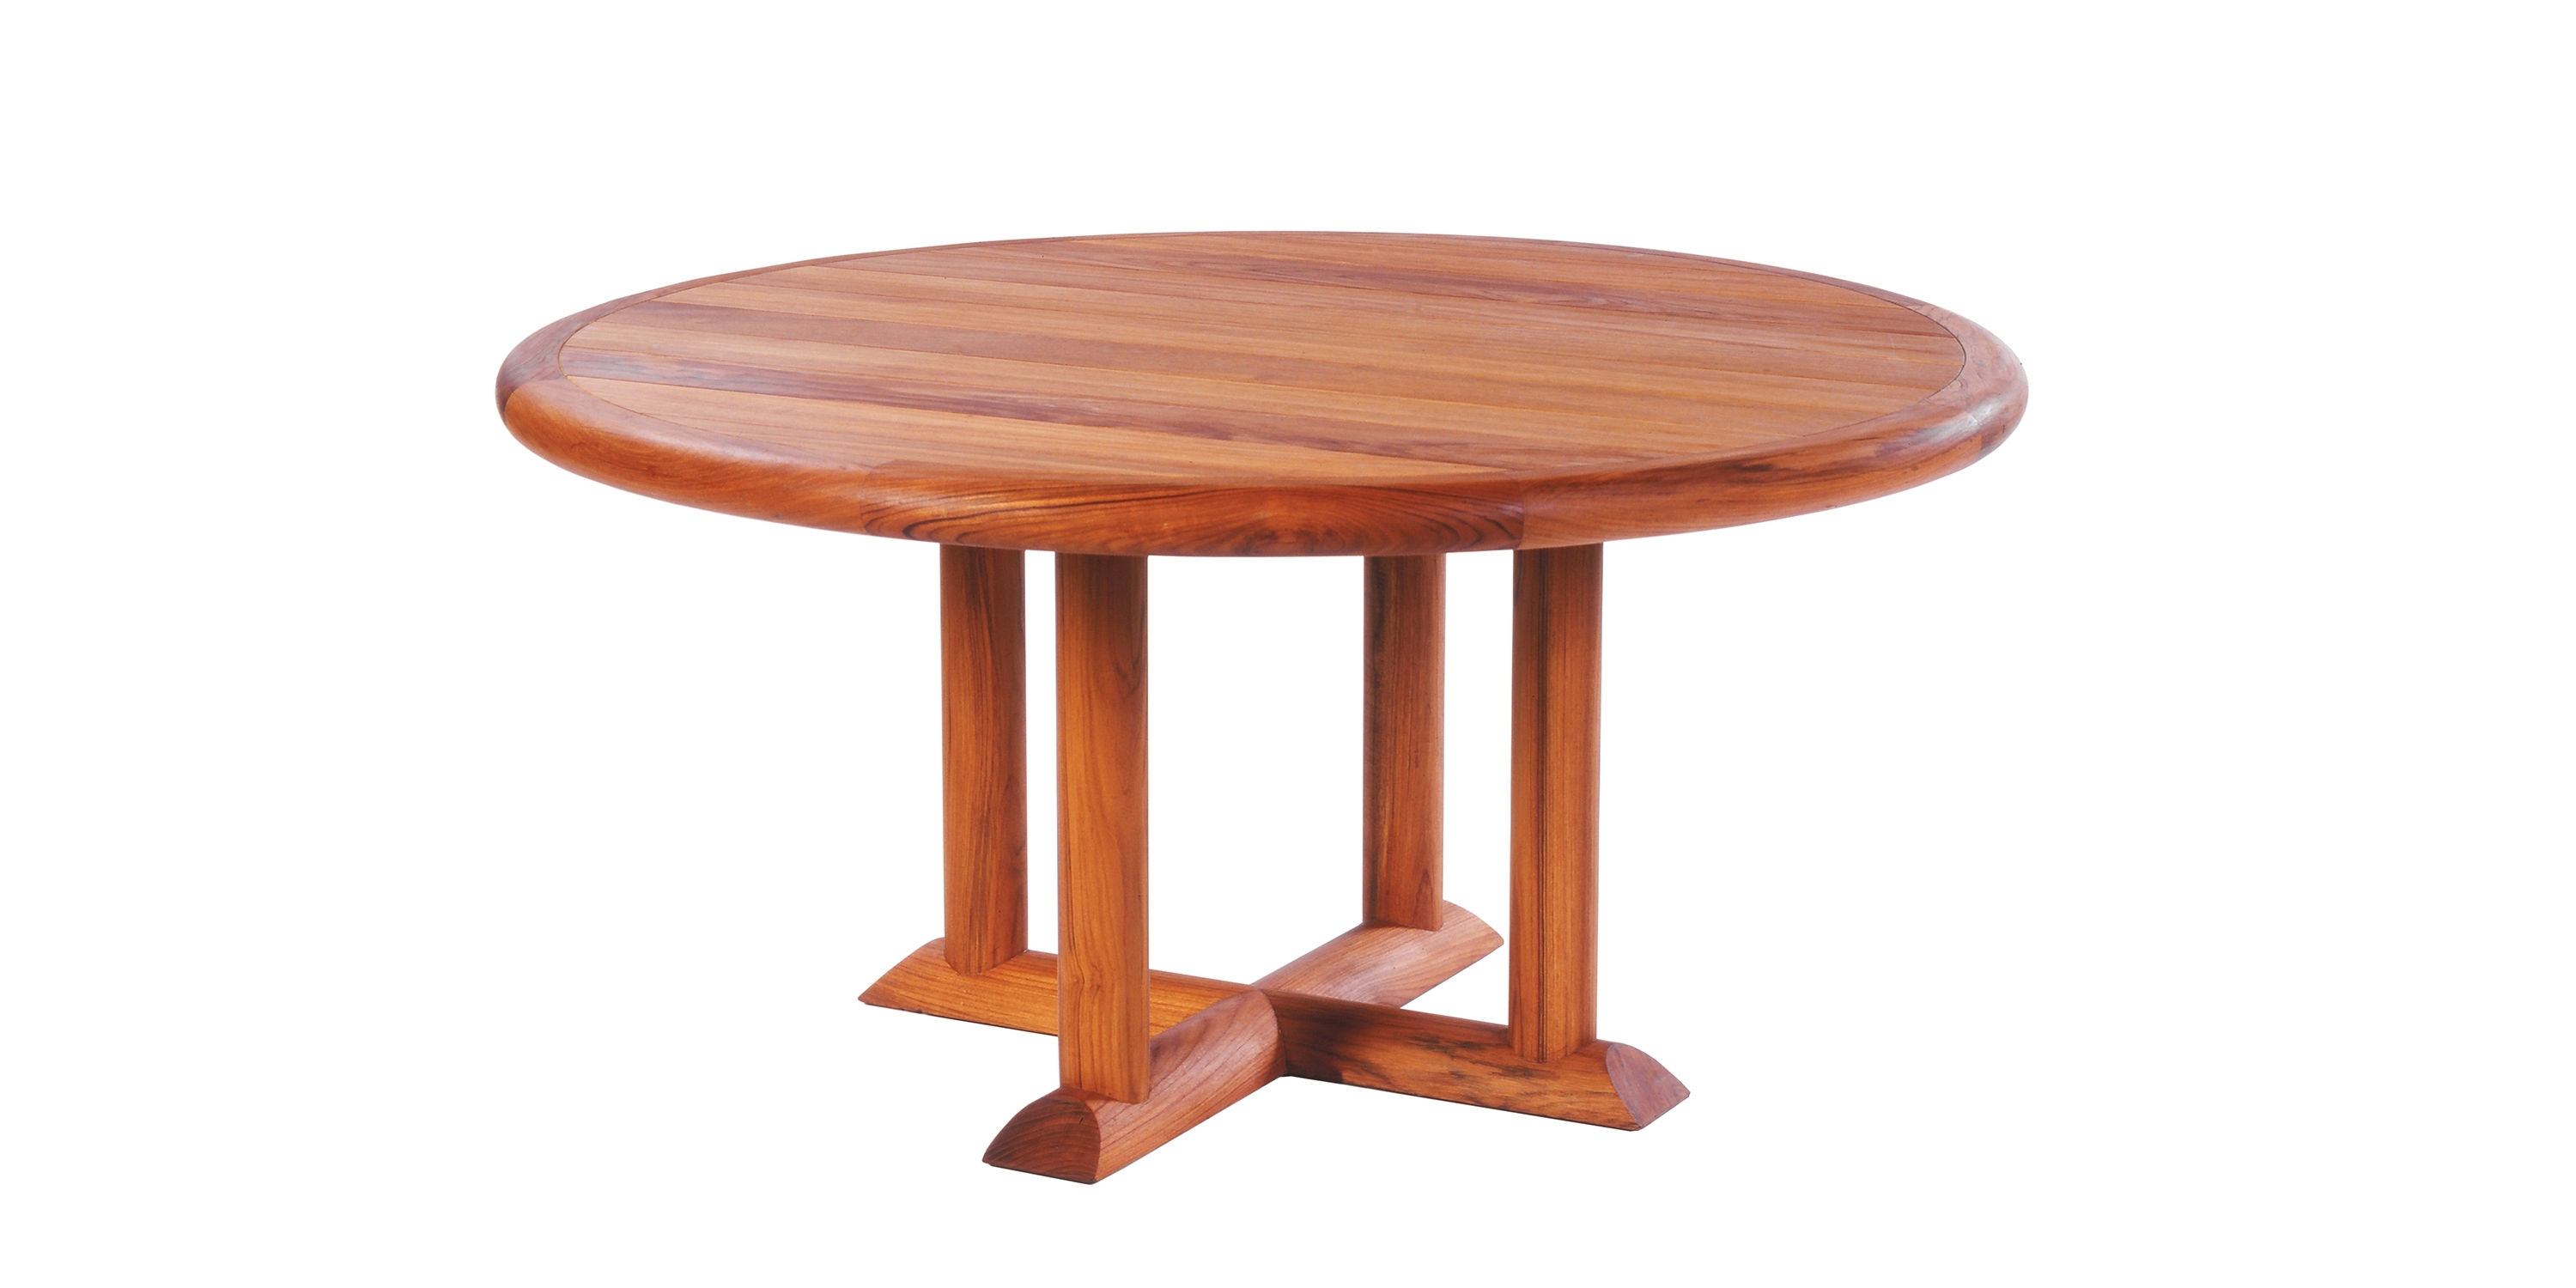 Round Teak Dining Tables Intended For Recent Douglas Teak Round Dining Table (View 17 of 25)